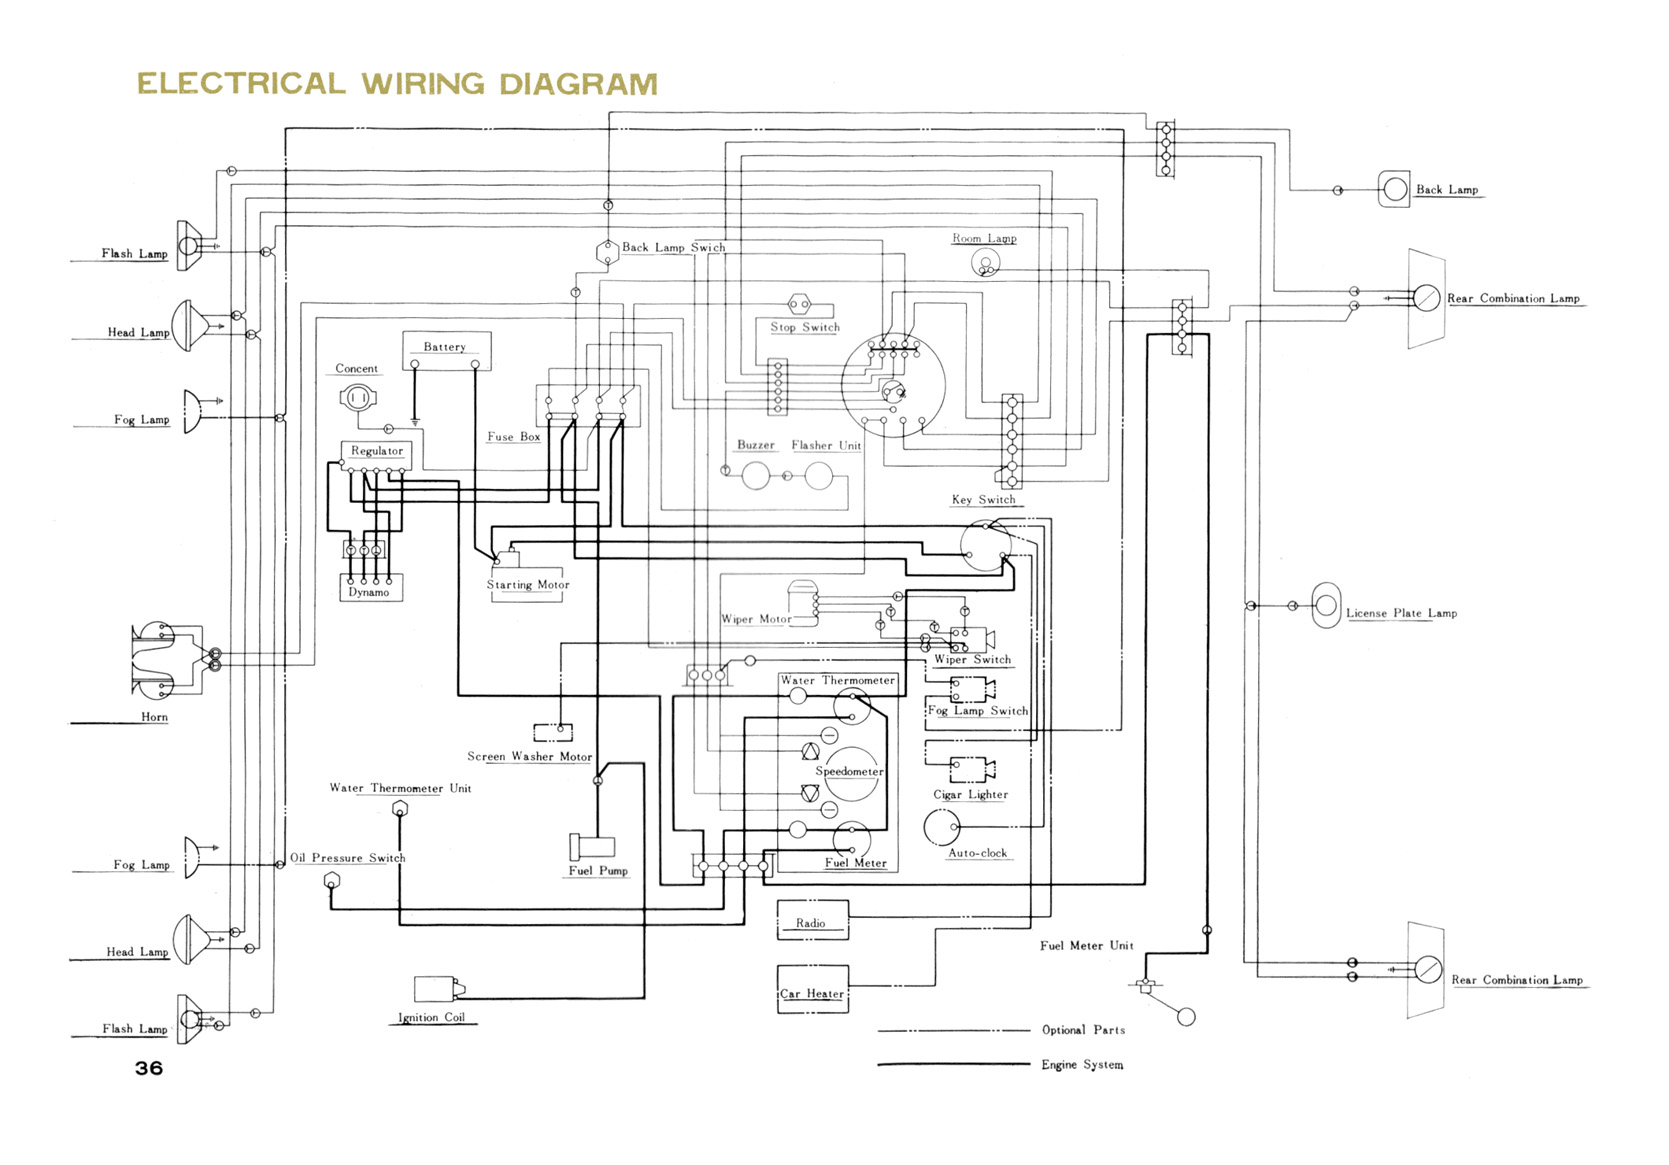 Mazda Electrical Wiring Diagrams Books Of Diagram R100 Fuse Box Familia 800 And 1000 Owners Manual 1963 Estate Au Rh Wyatt Software Com Workbook B2200